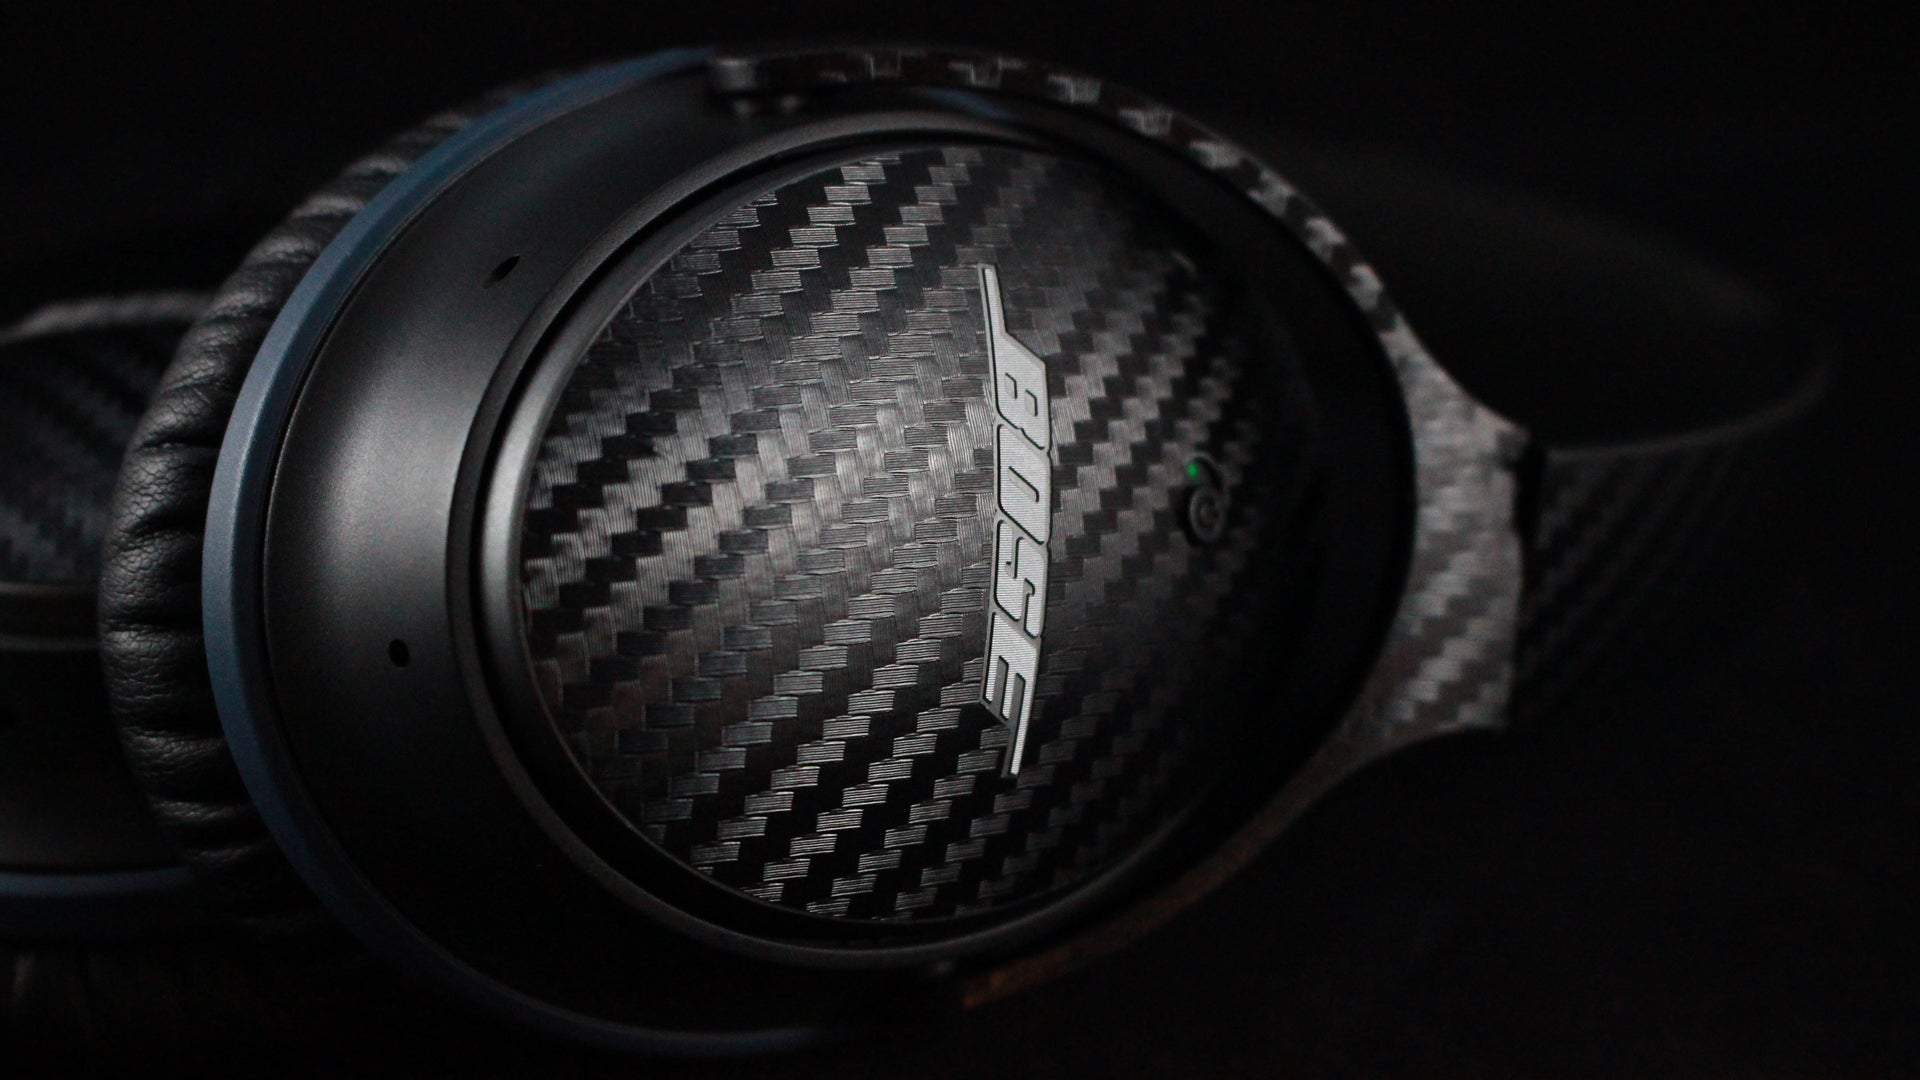 Bose QC25 Headphones Black Carbon Skins